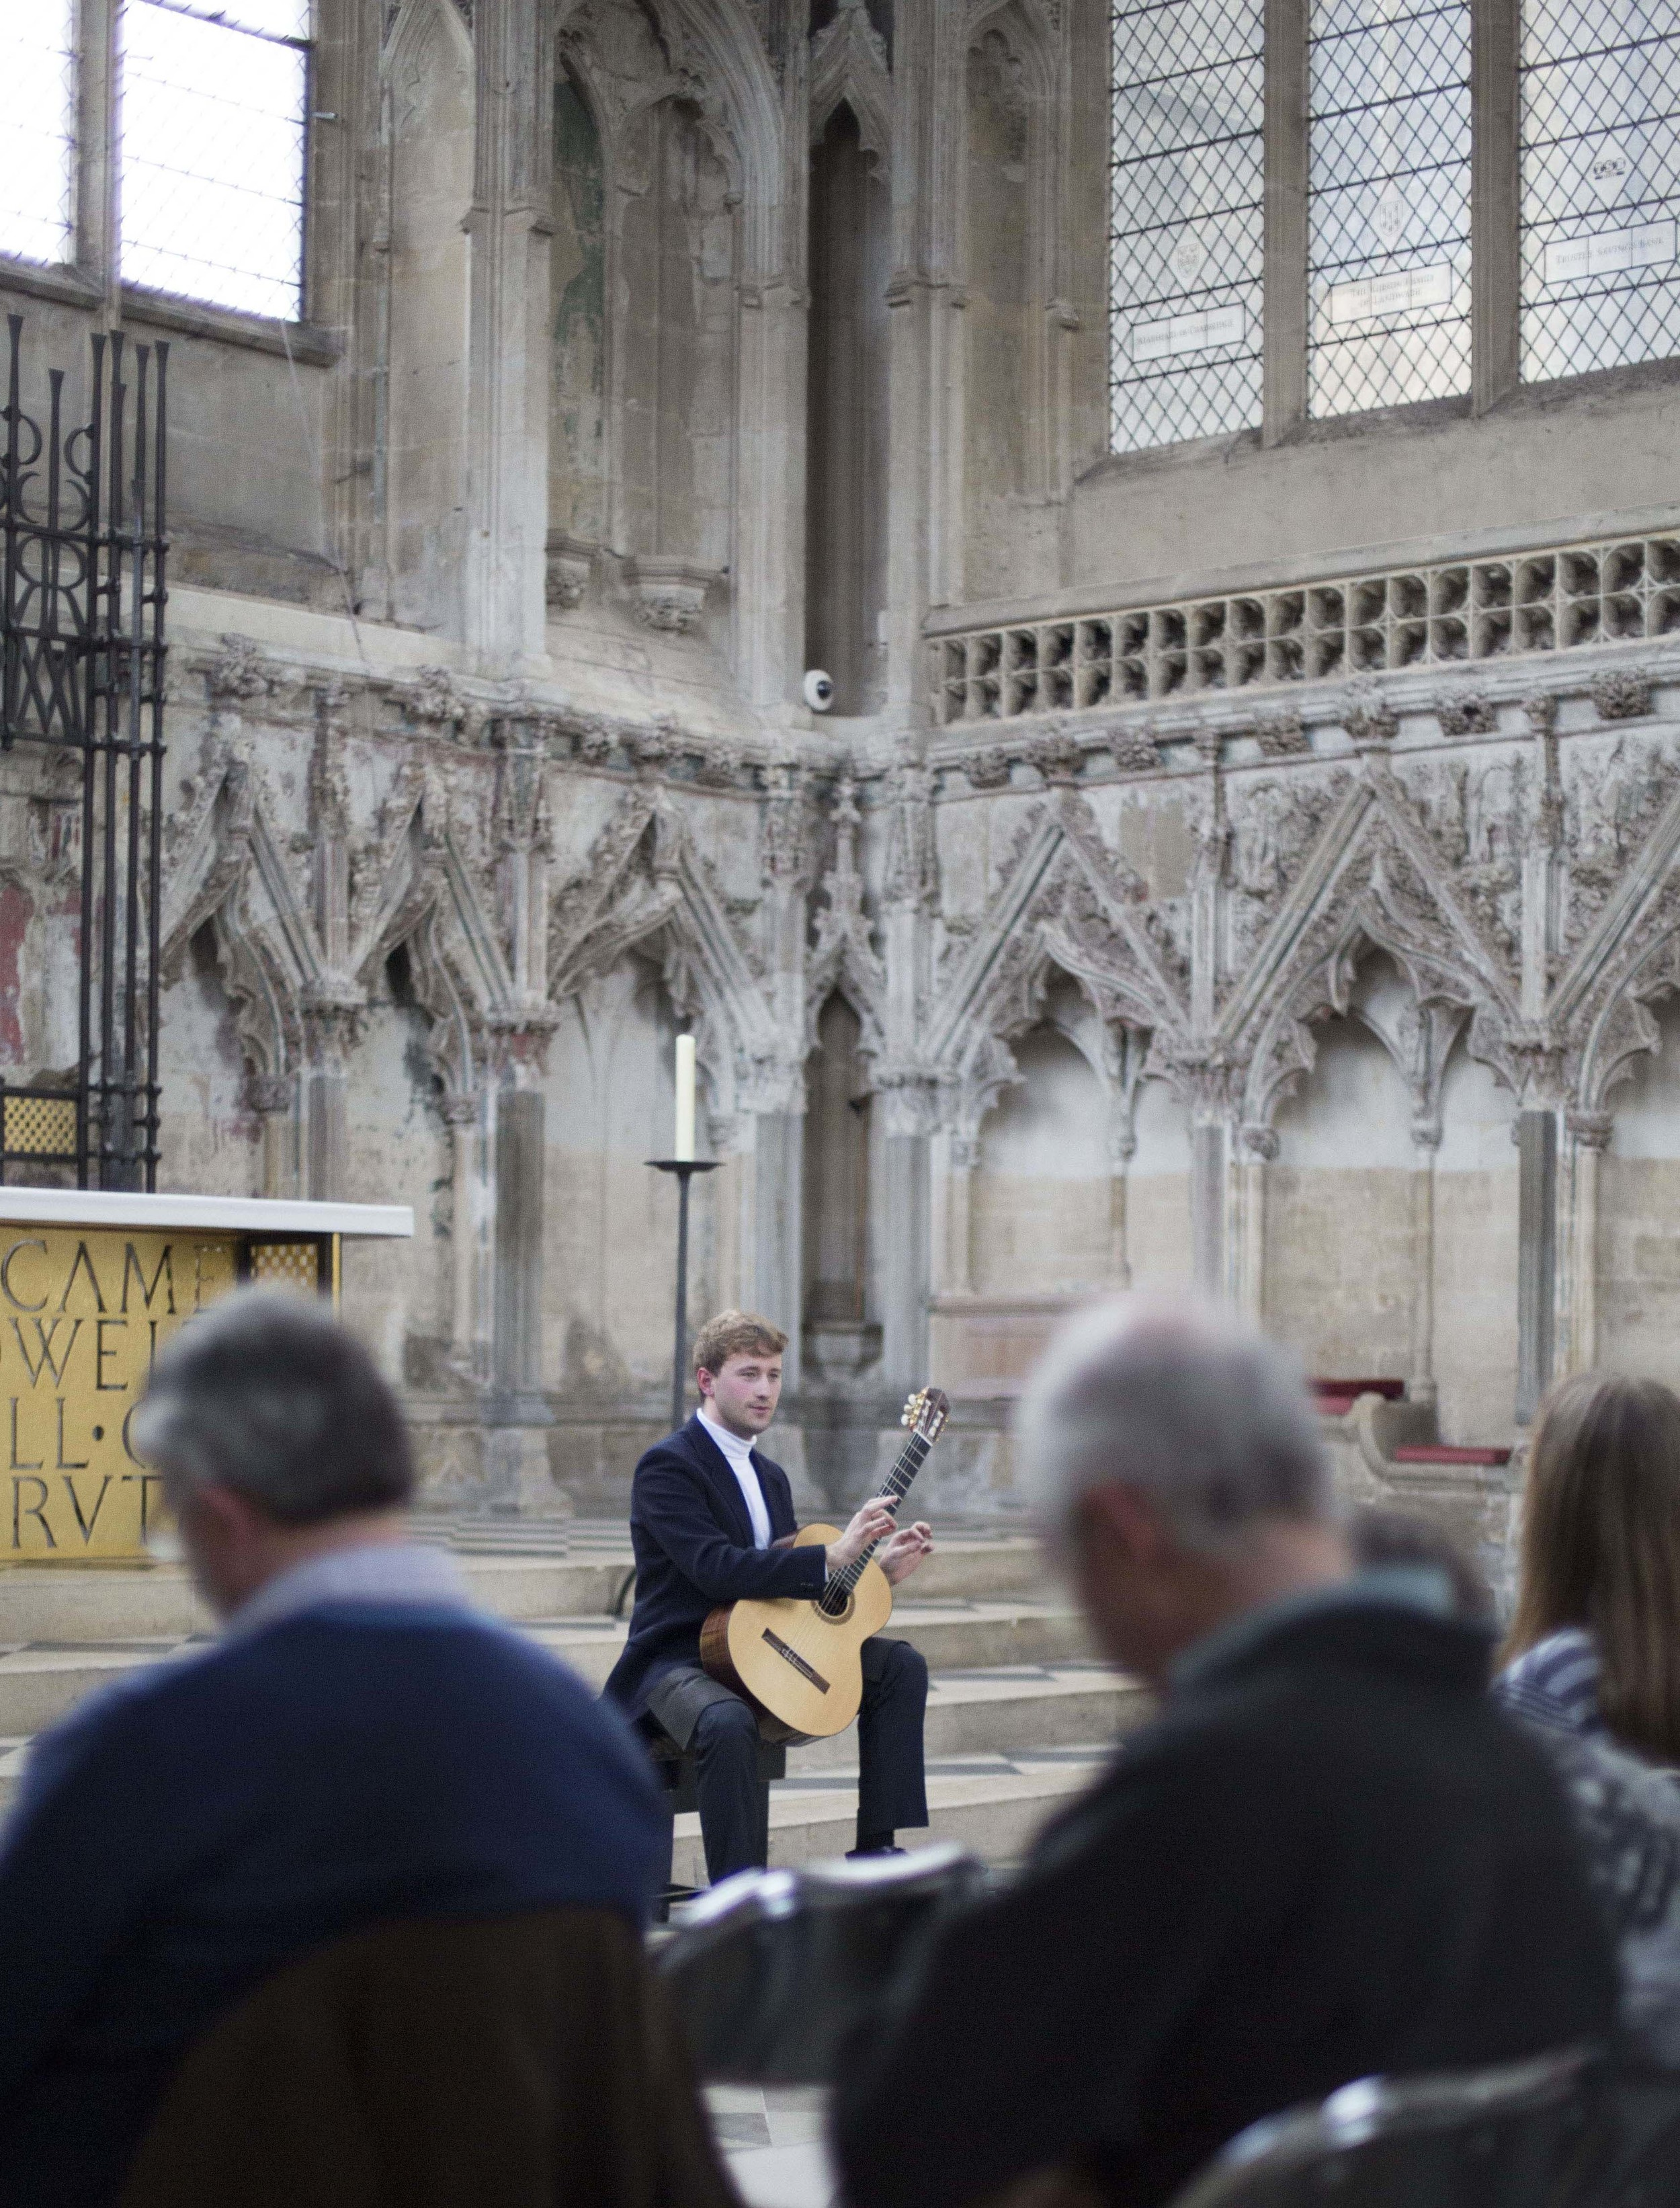 Discussing the programme at Ely Cathedral